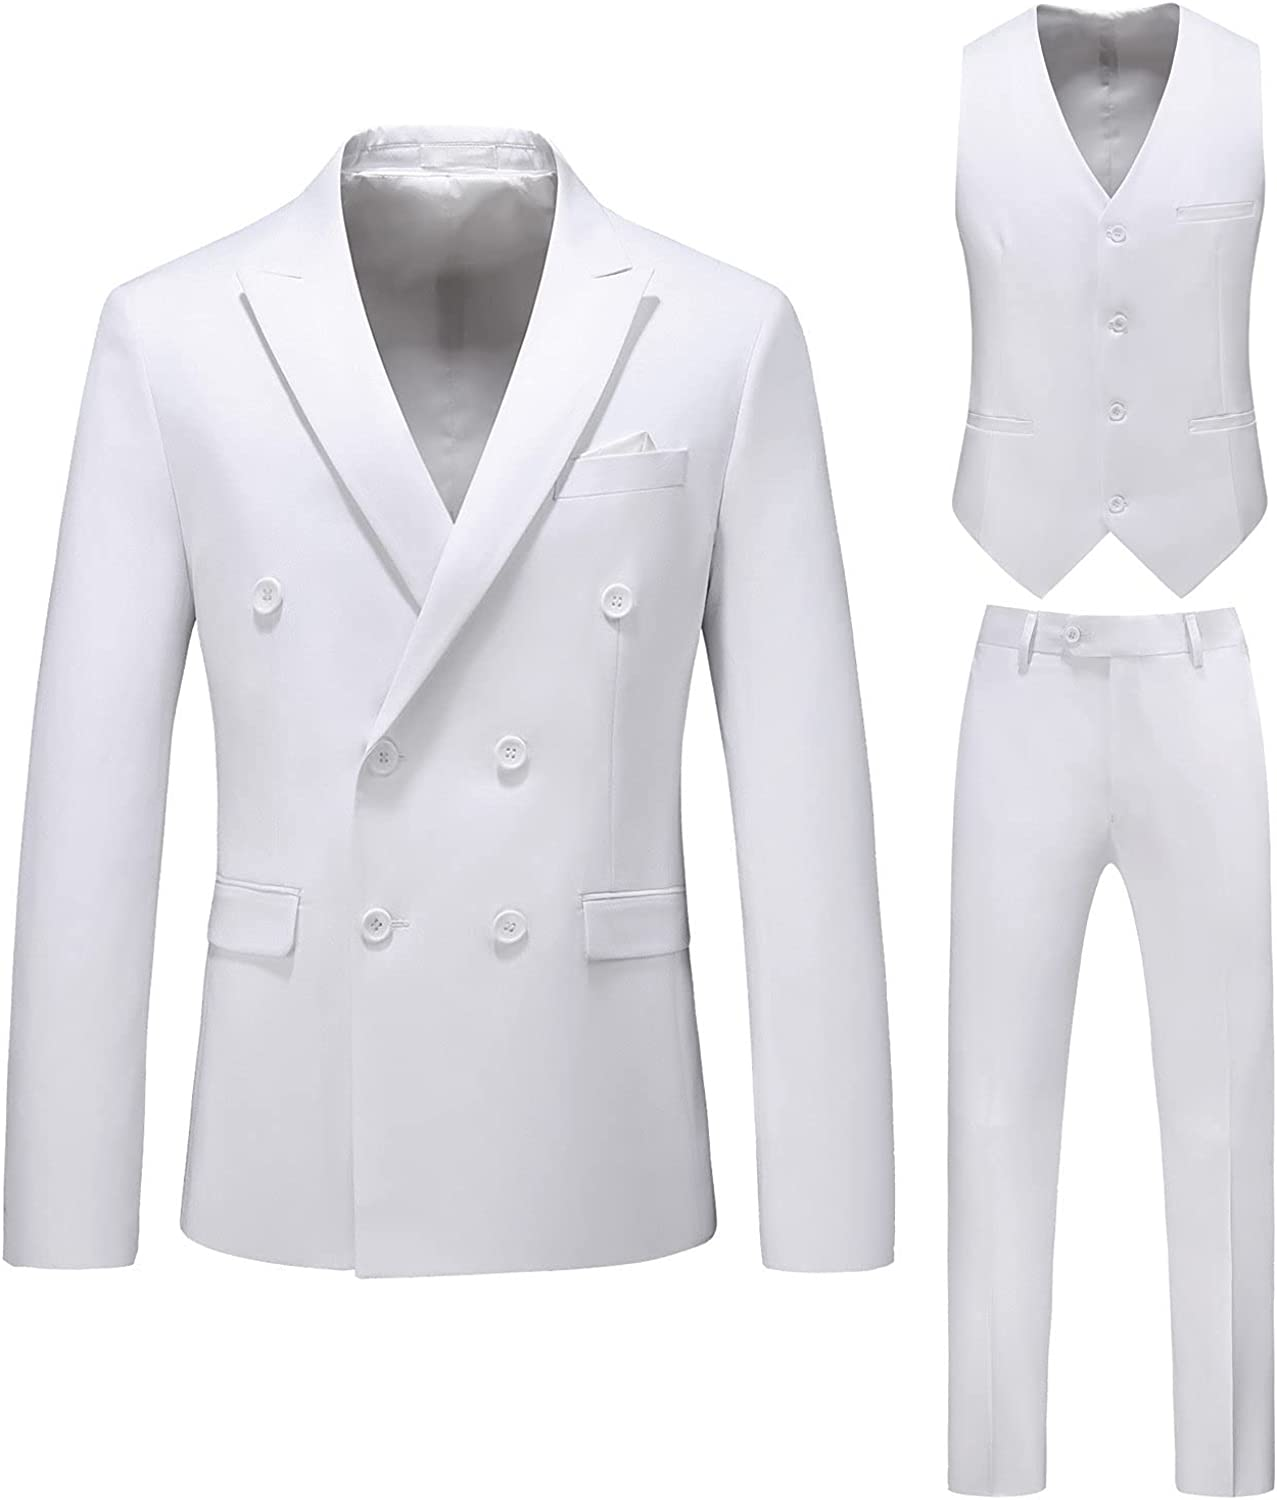 Mens Fit Double Breasted Special Campaign 3 Great interest Piece Dress Suit Wedding Party Suits